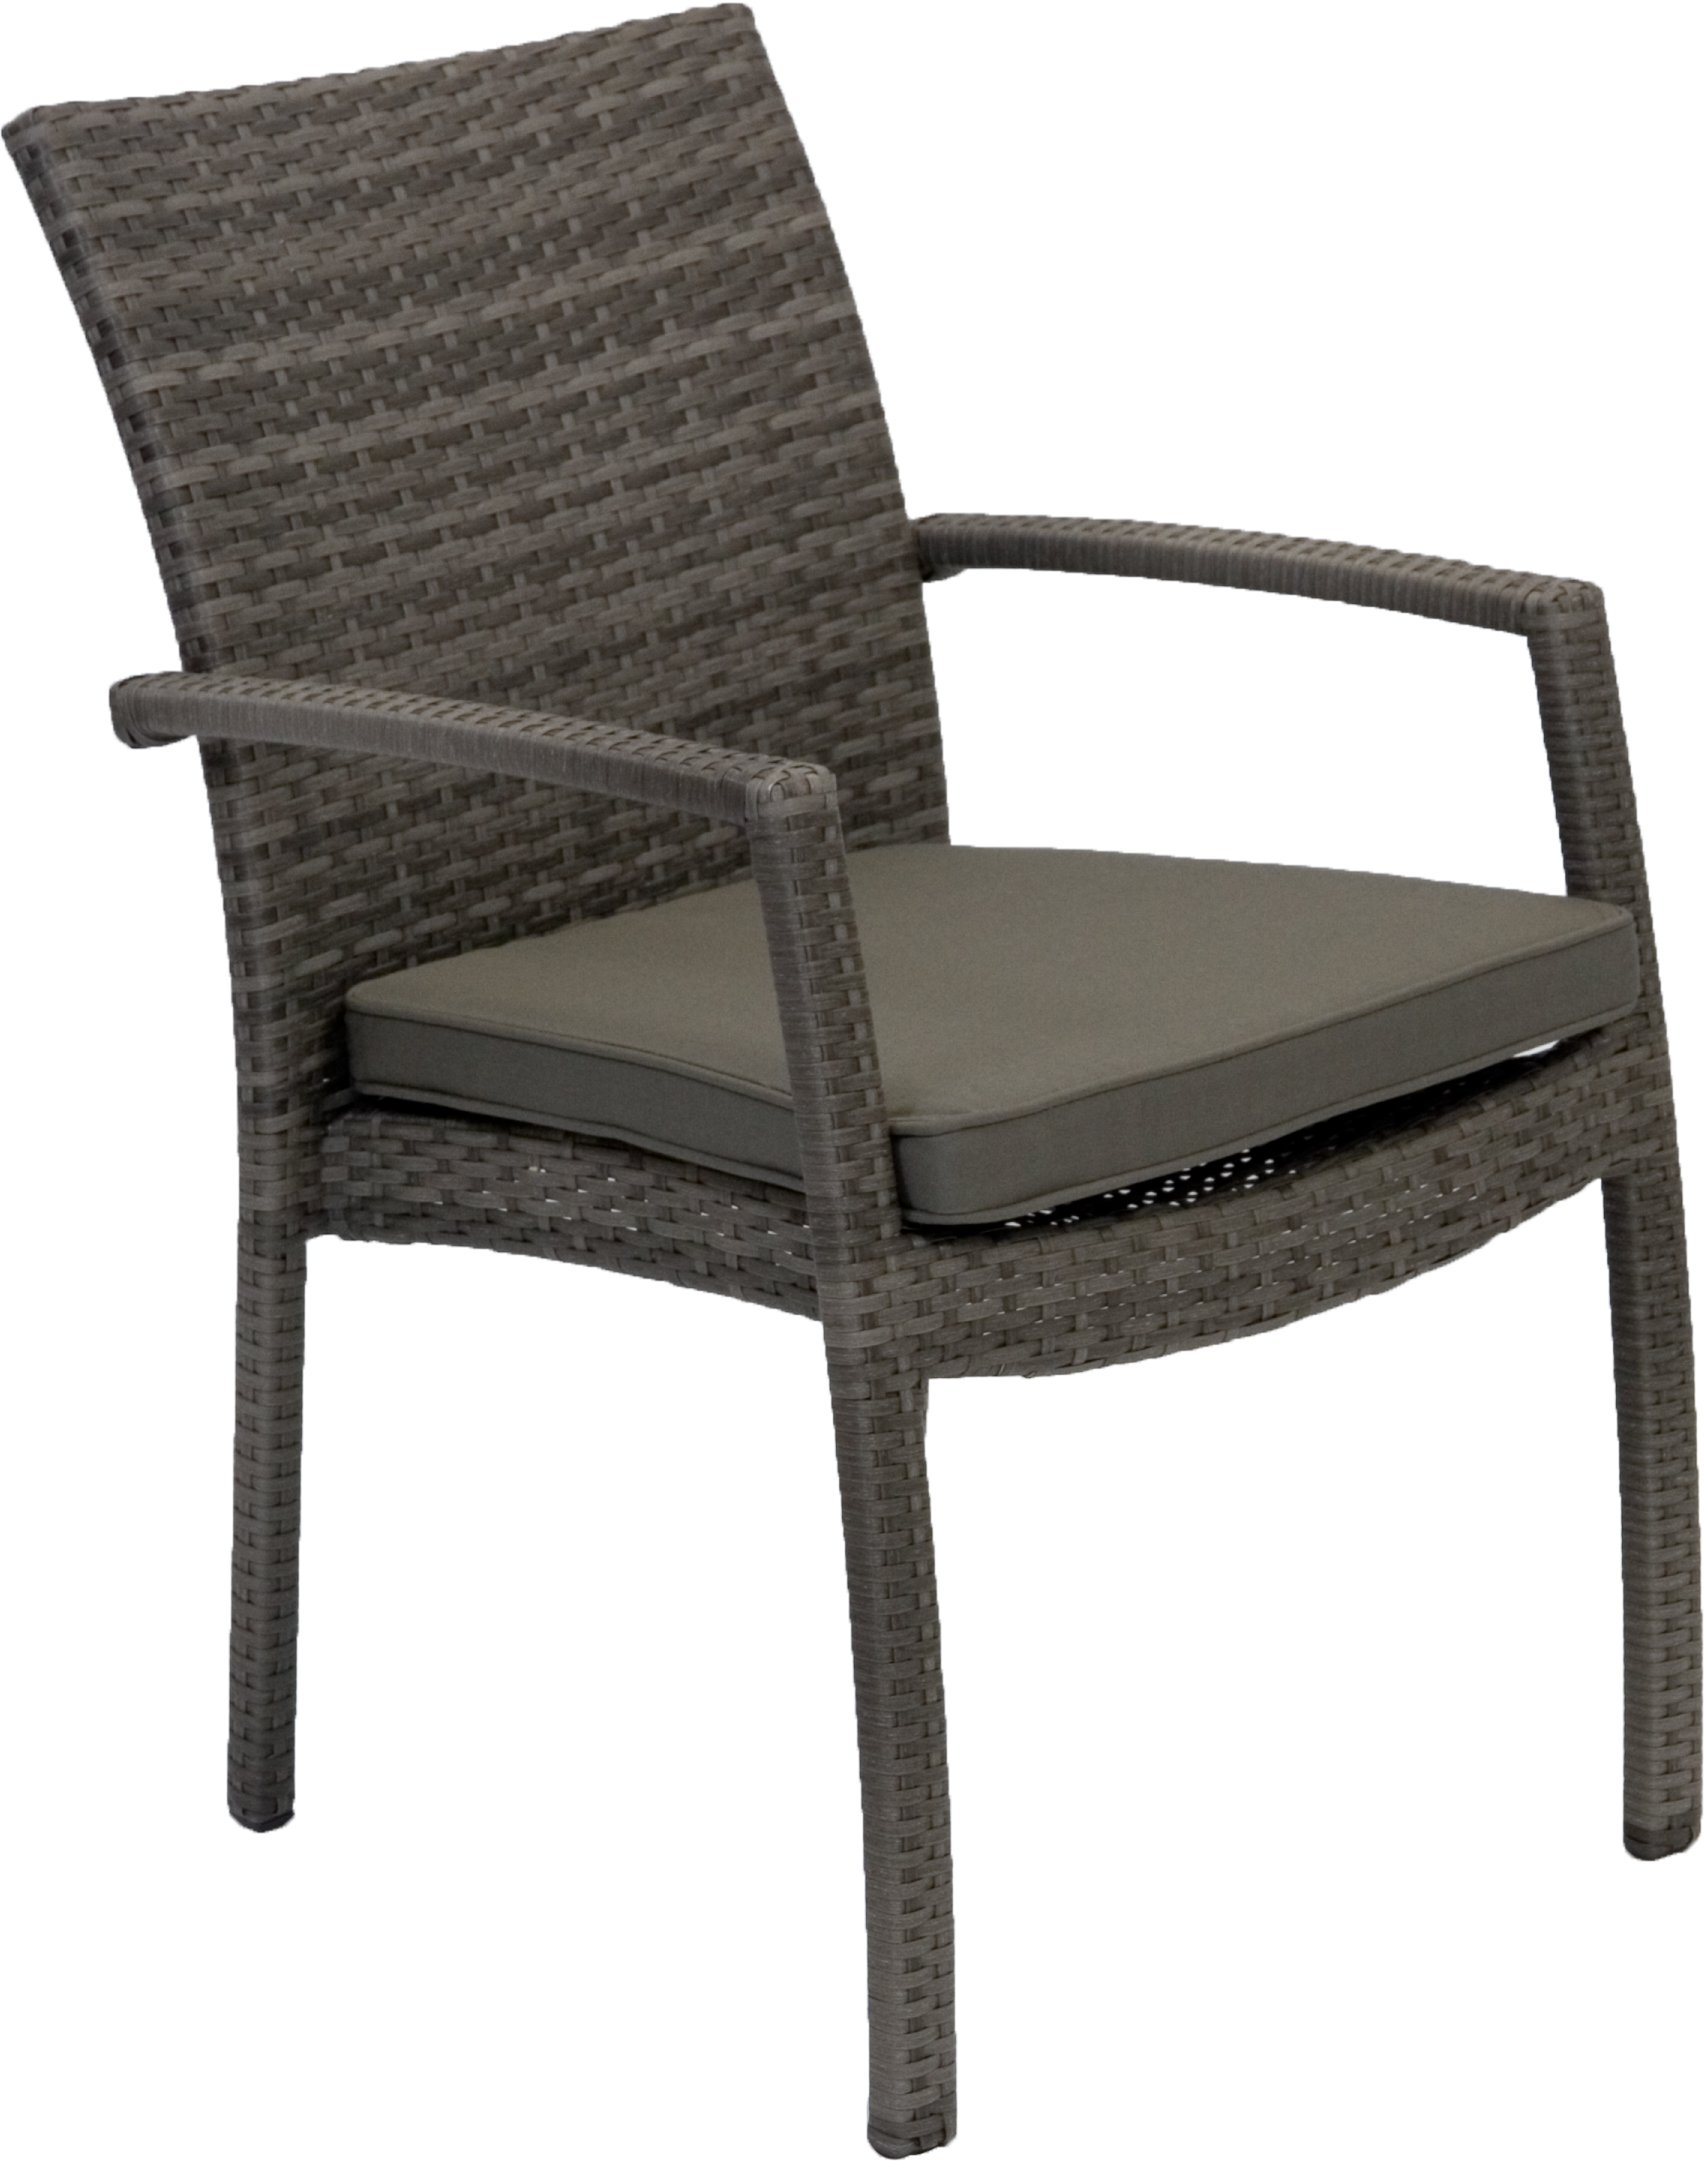 Stacking Dining Chairs Villa Stacking Dining Chair